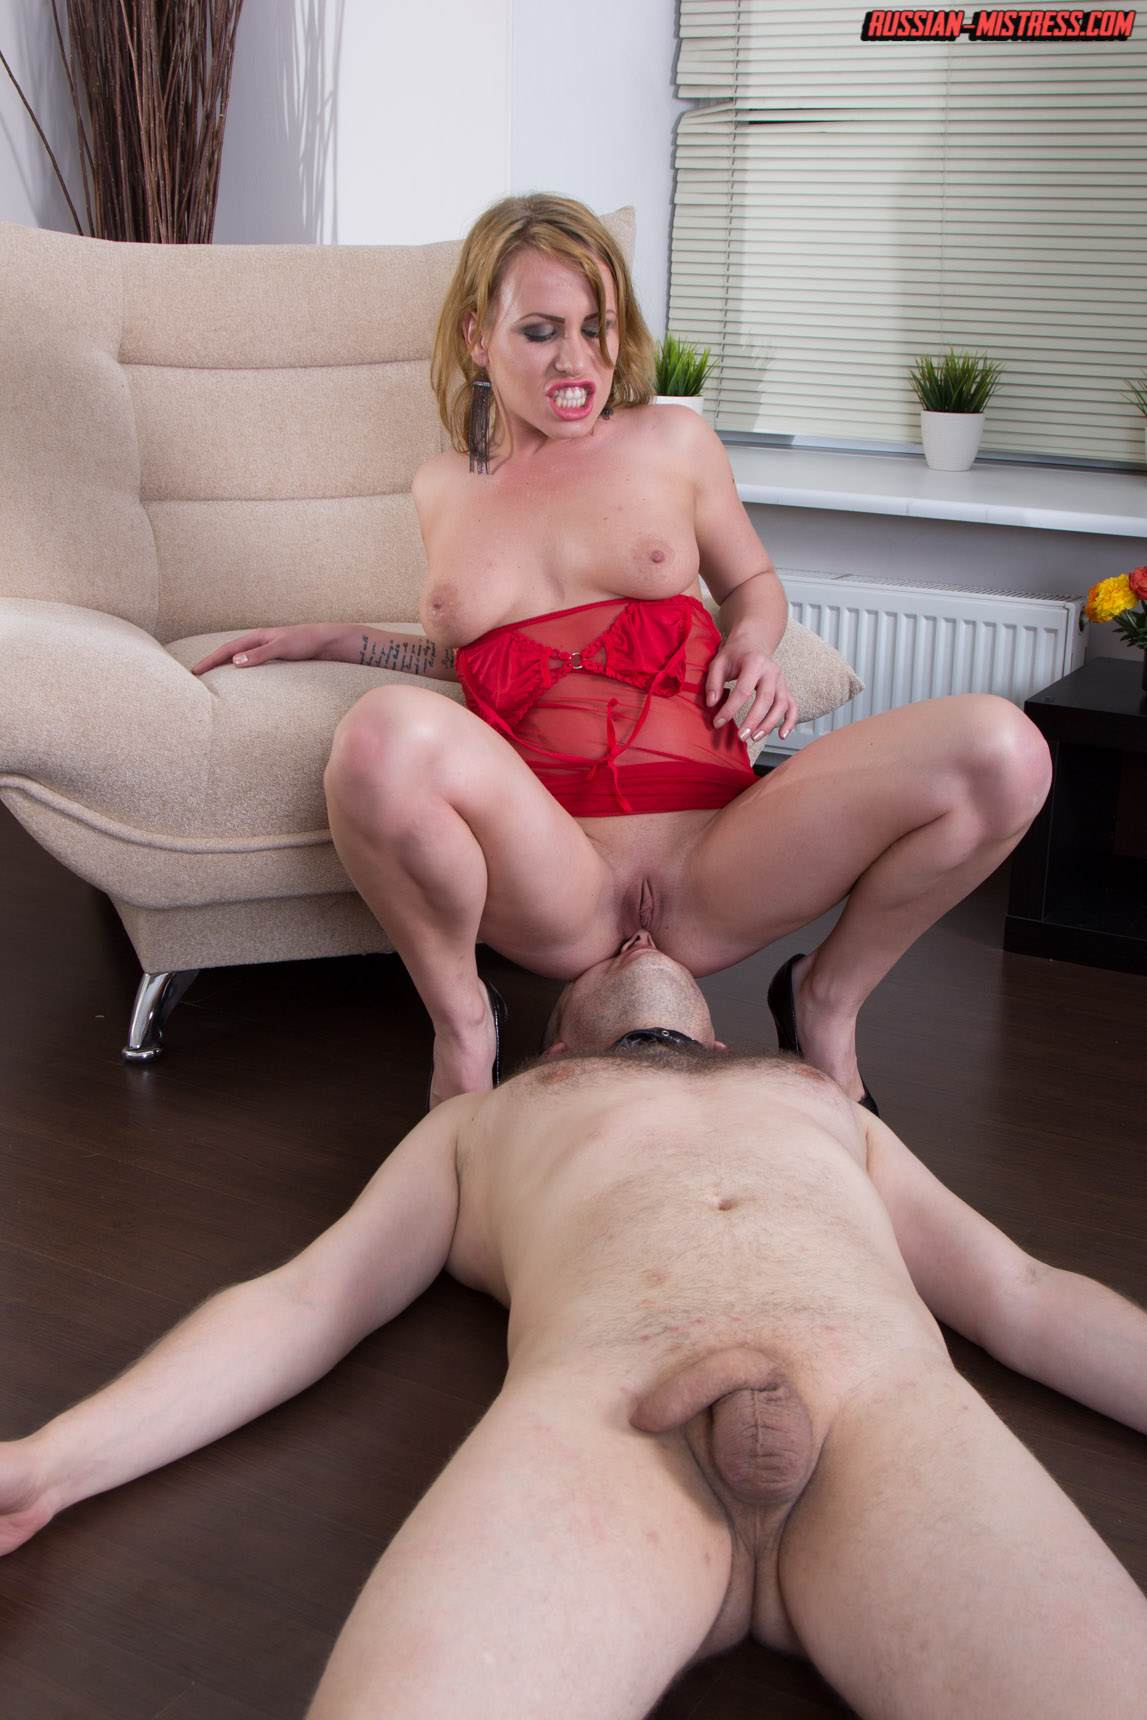 Picture #11 of Cruel bitch is loving wearing red lingerie and heels when pushing slave's face in between her butt cheeks and then peeing then over him